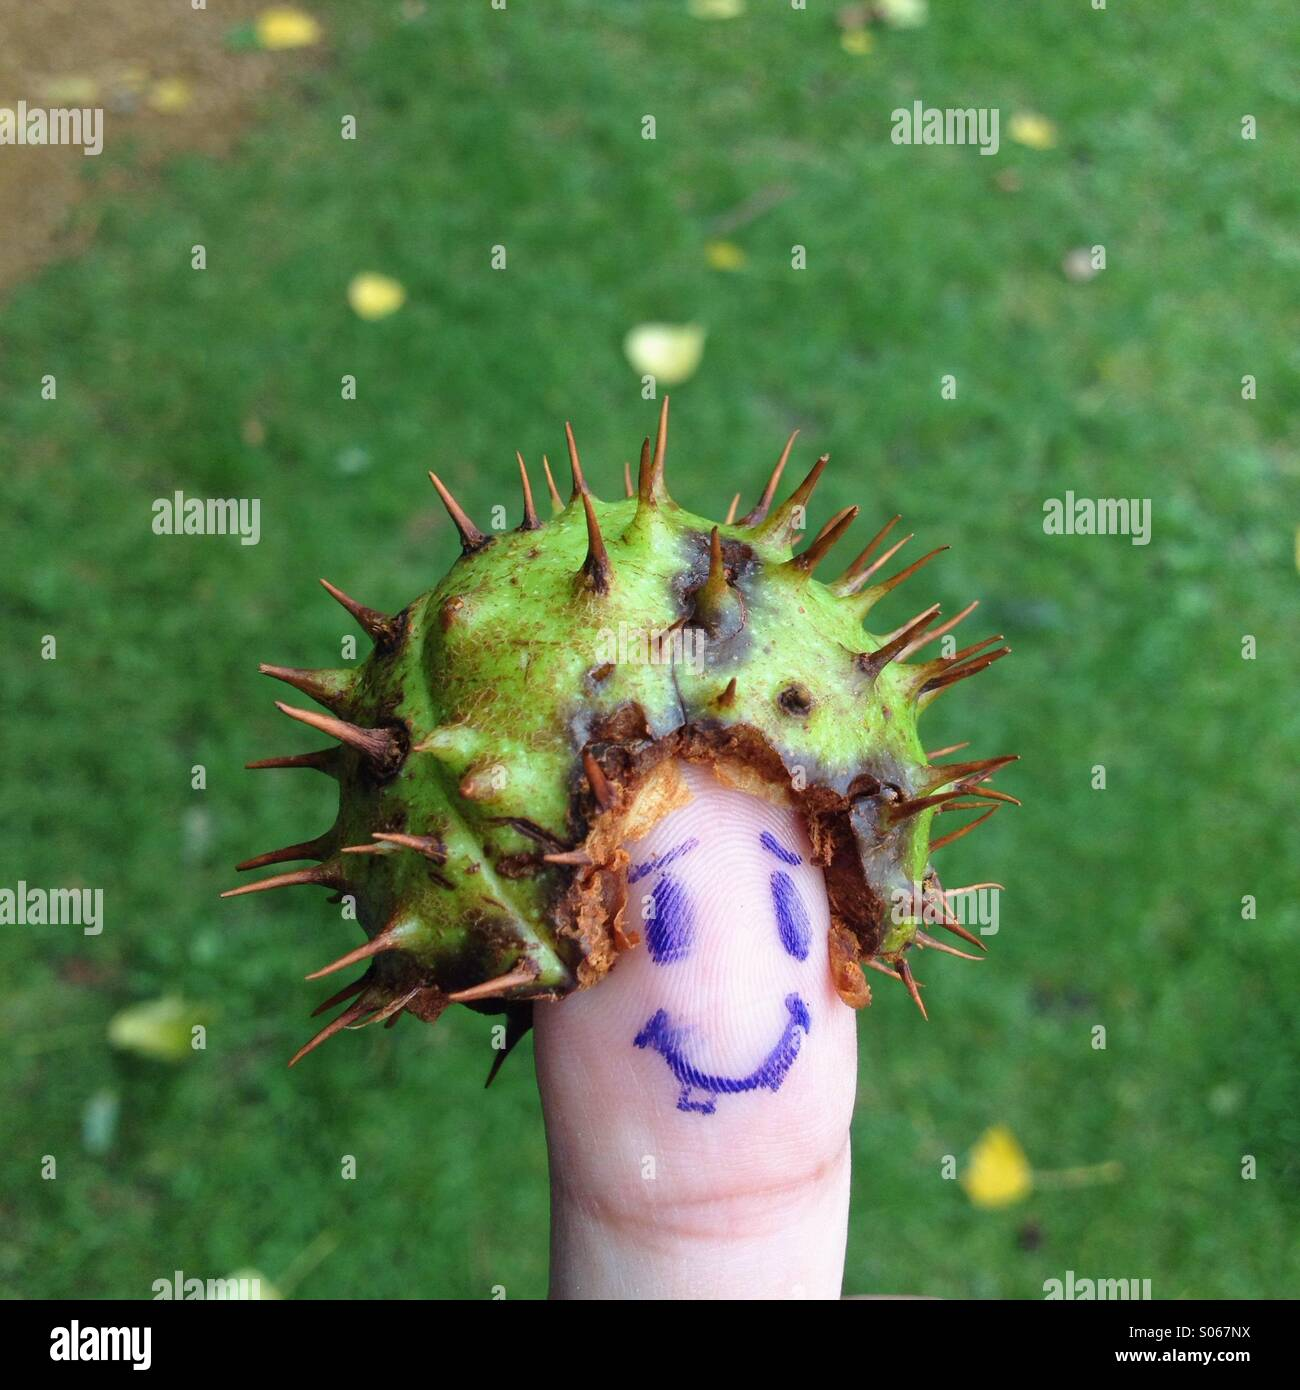 Conker prickly skin on thumb - Stock Image